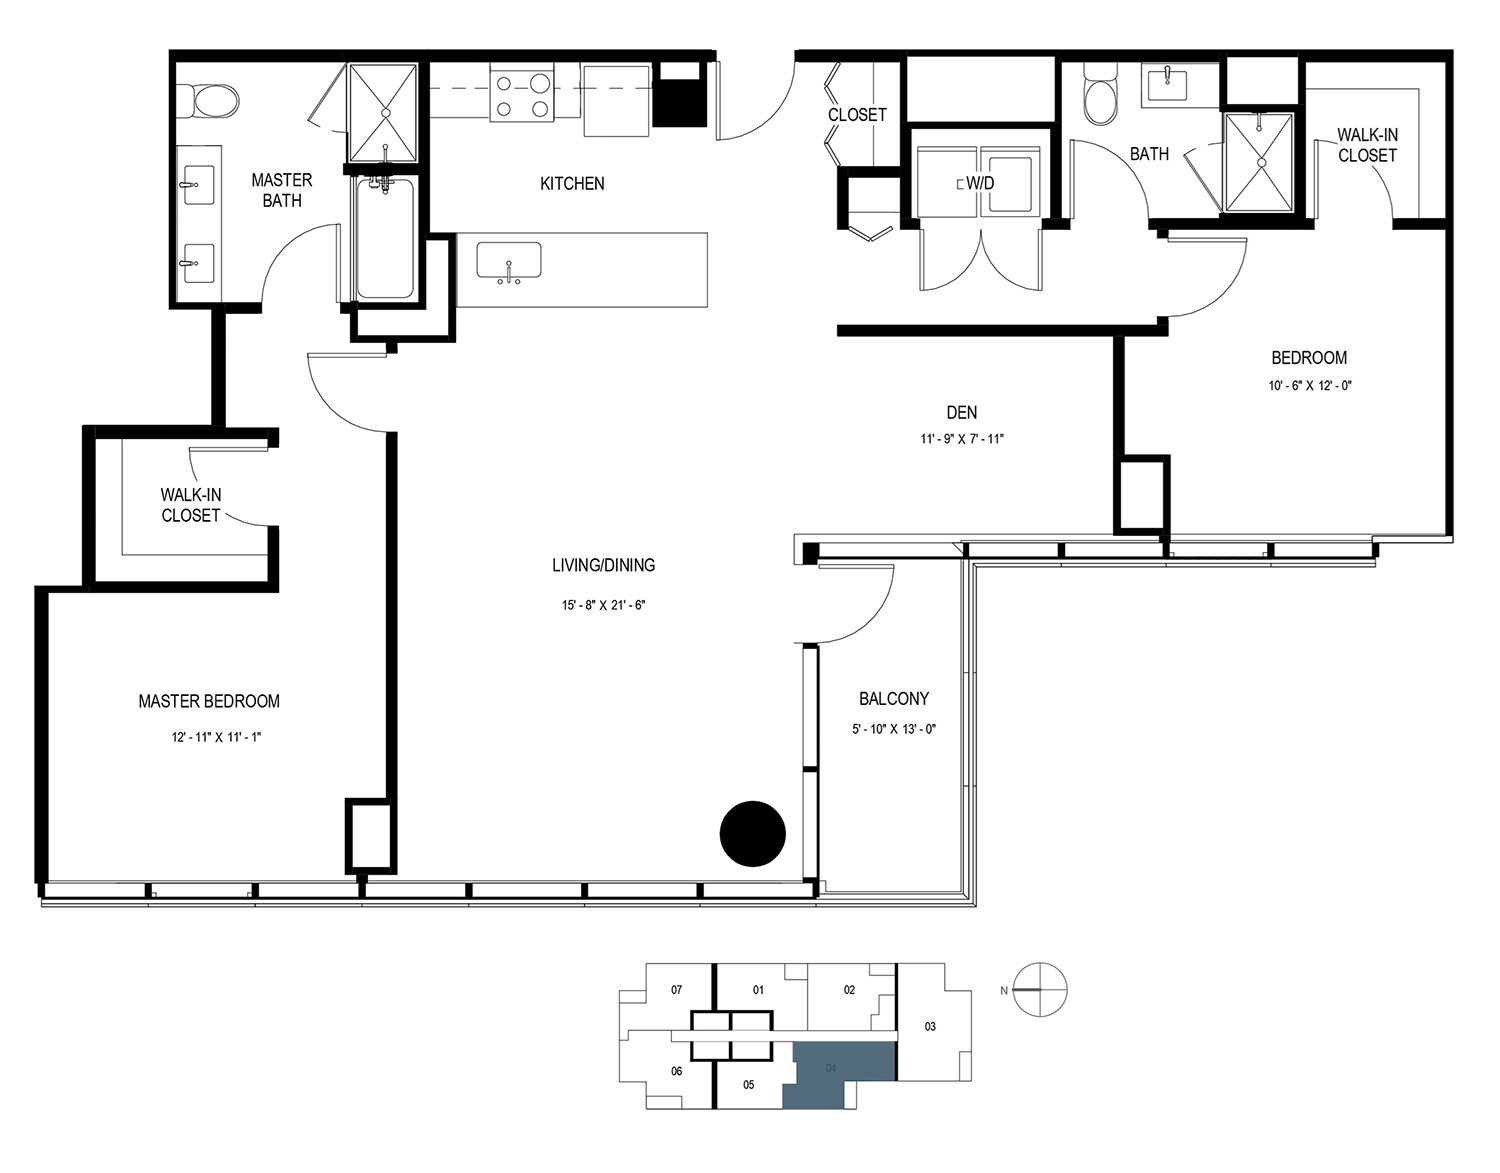 Two Bedroom Penthouse with Den (1364 sf) Floor Plan 22